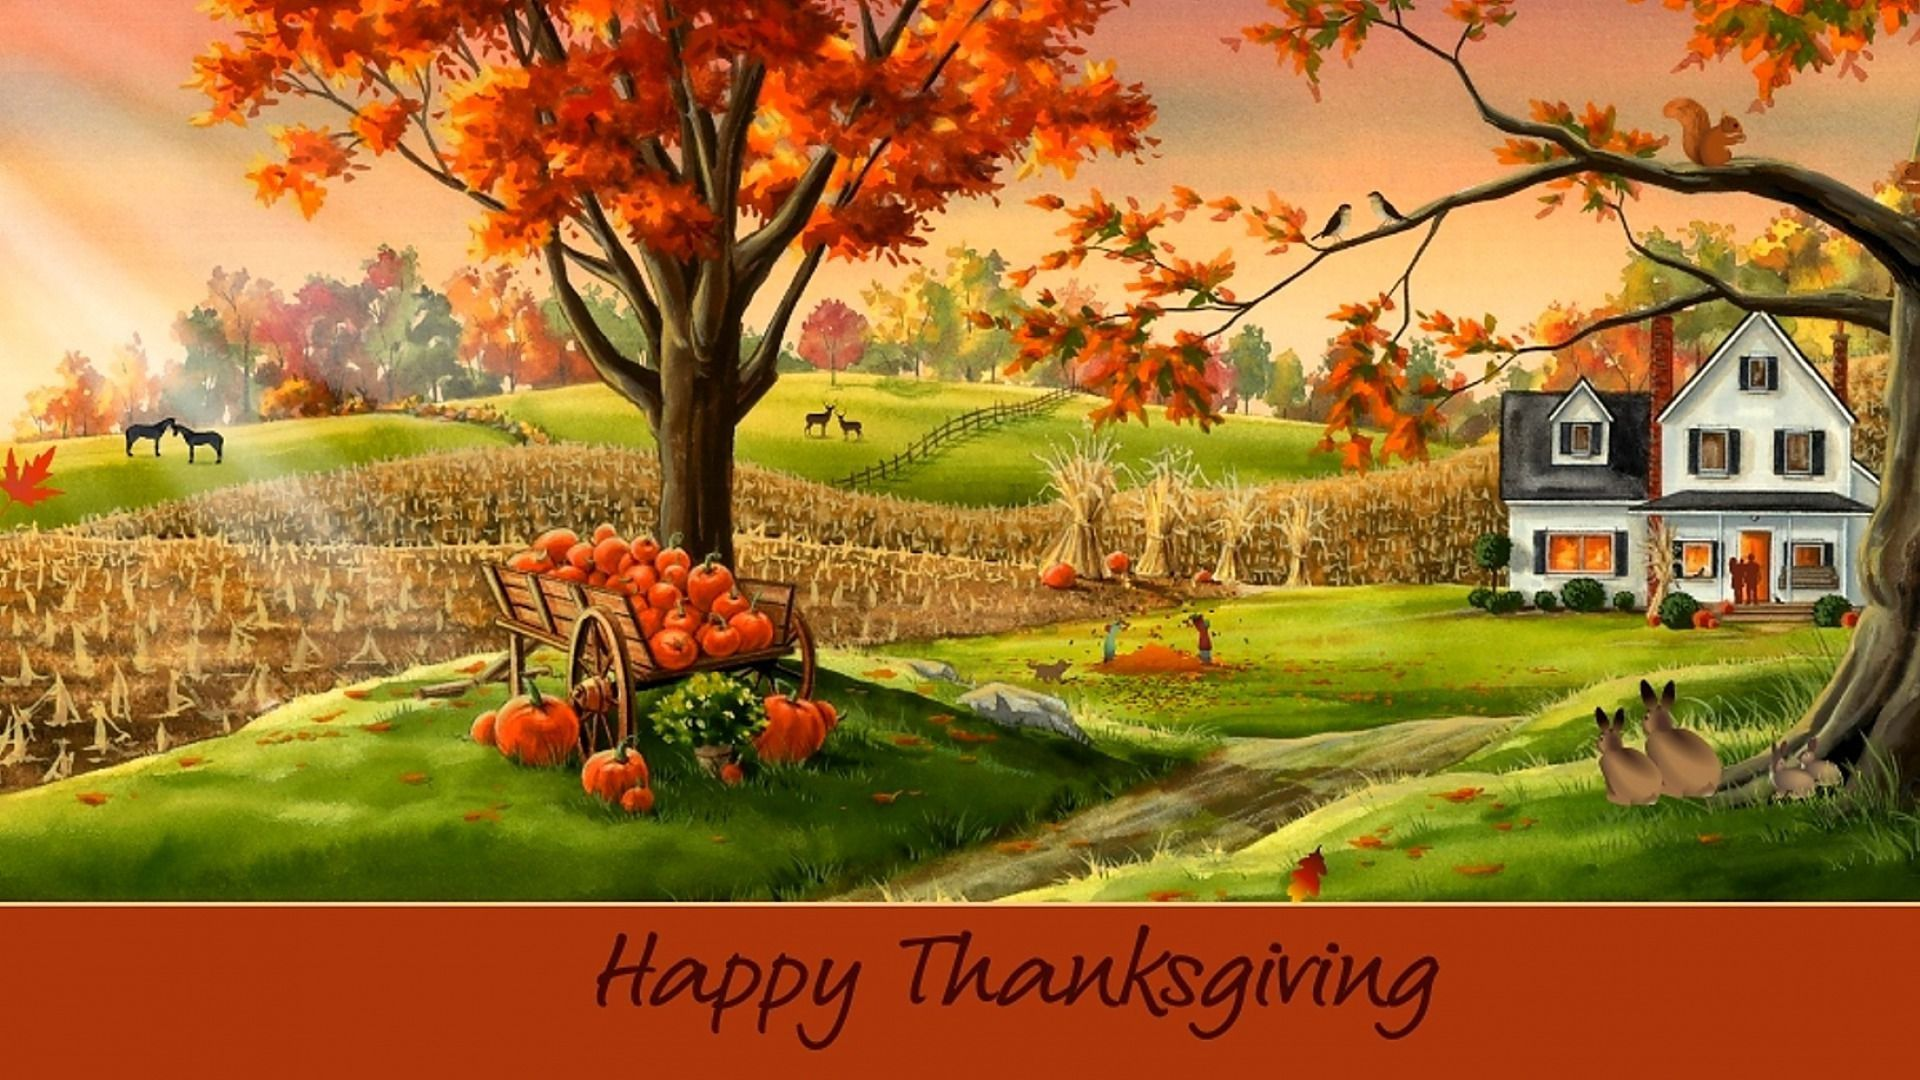 Happy Thanksgiving Desktop Wallpapers